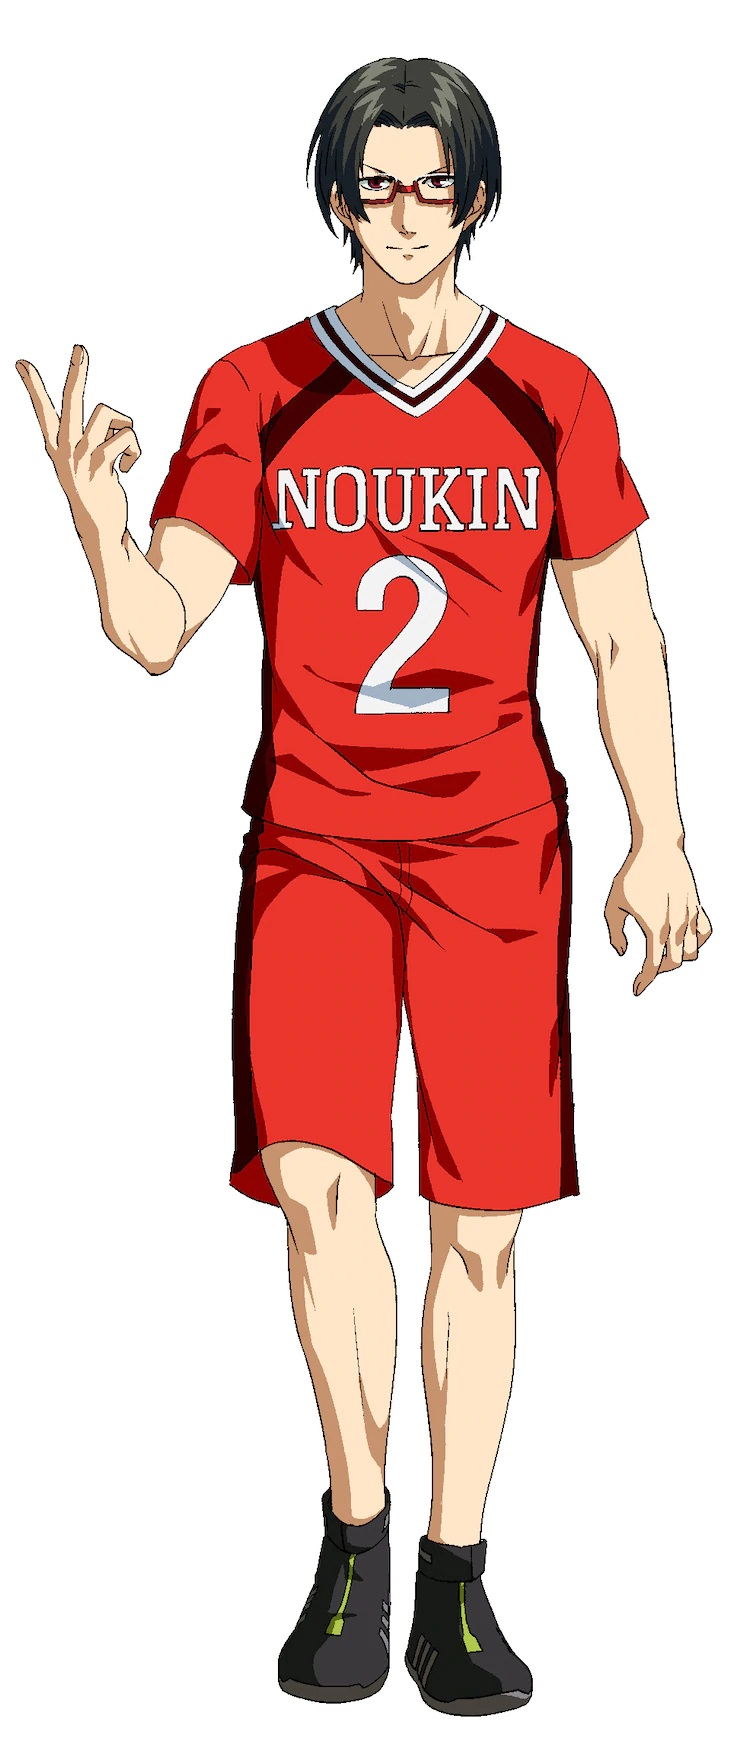 A character setting of Kei Iura, a bespectacled members of the Noukin High School kabaddi club whose gentle demeanor hides a ruthless cunning, from the upcoming Burning Kabaddi TV anime.